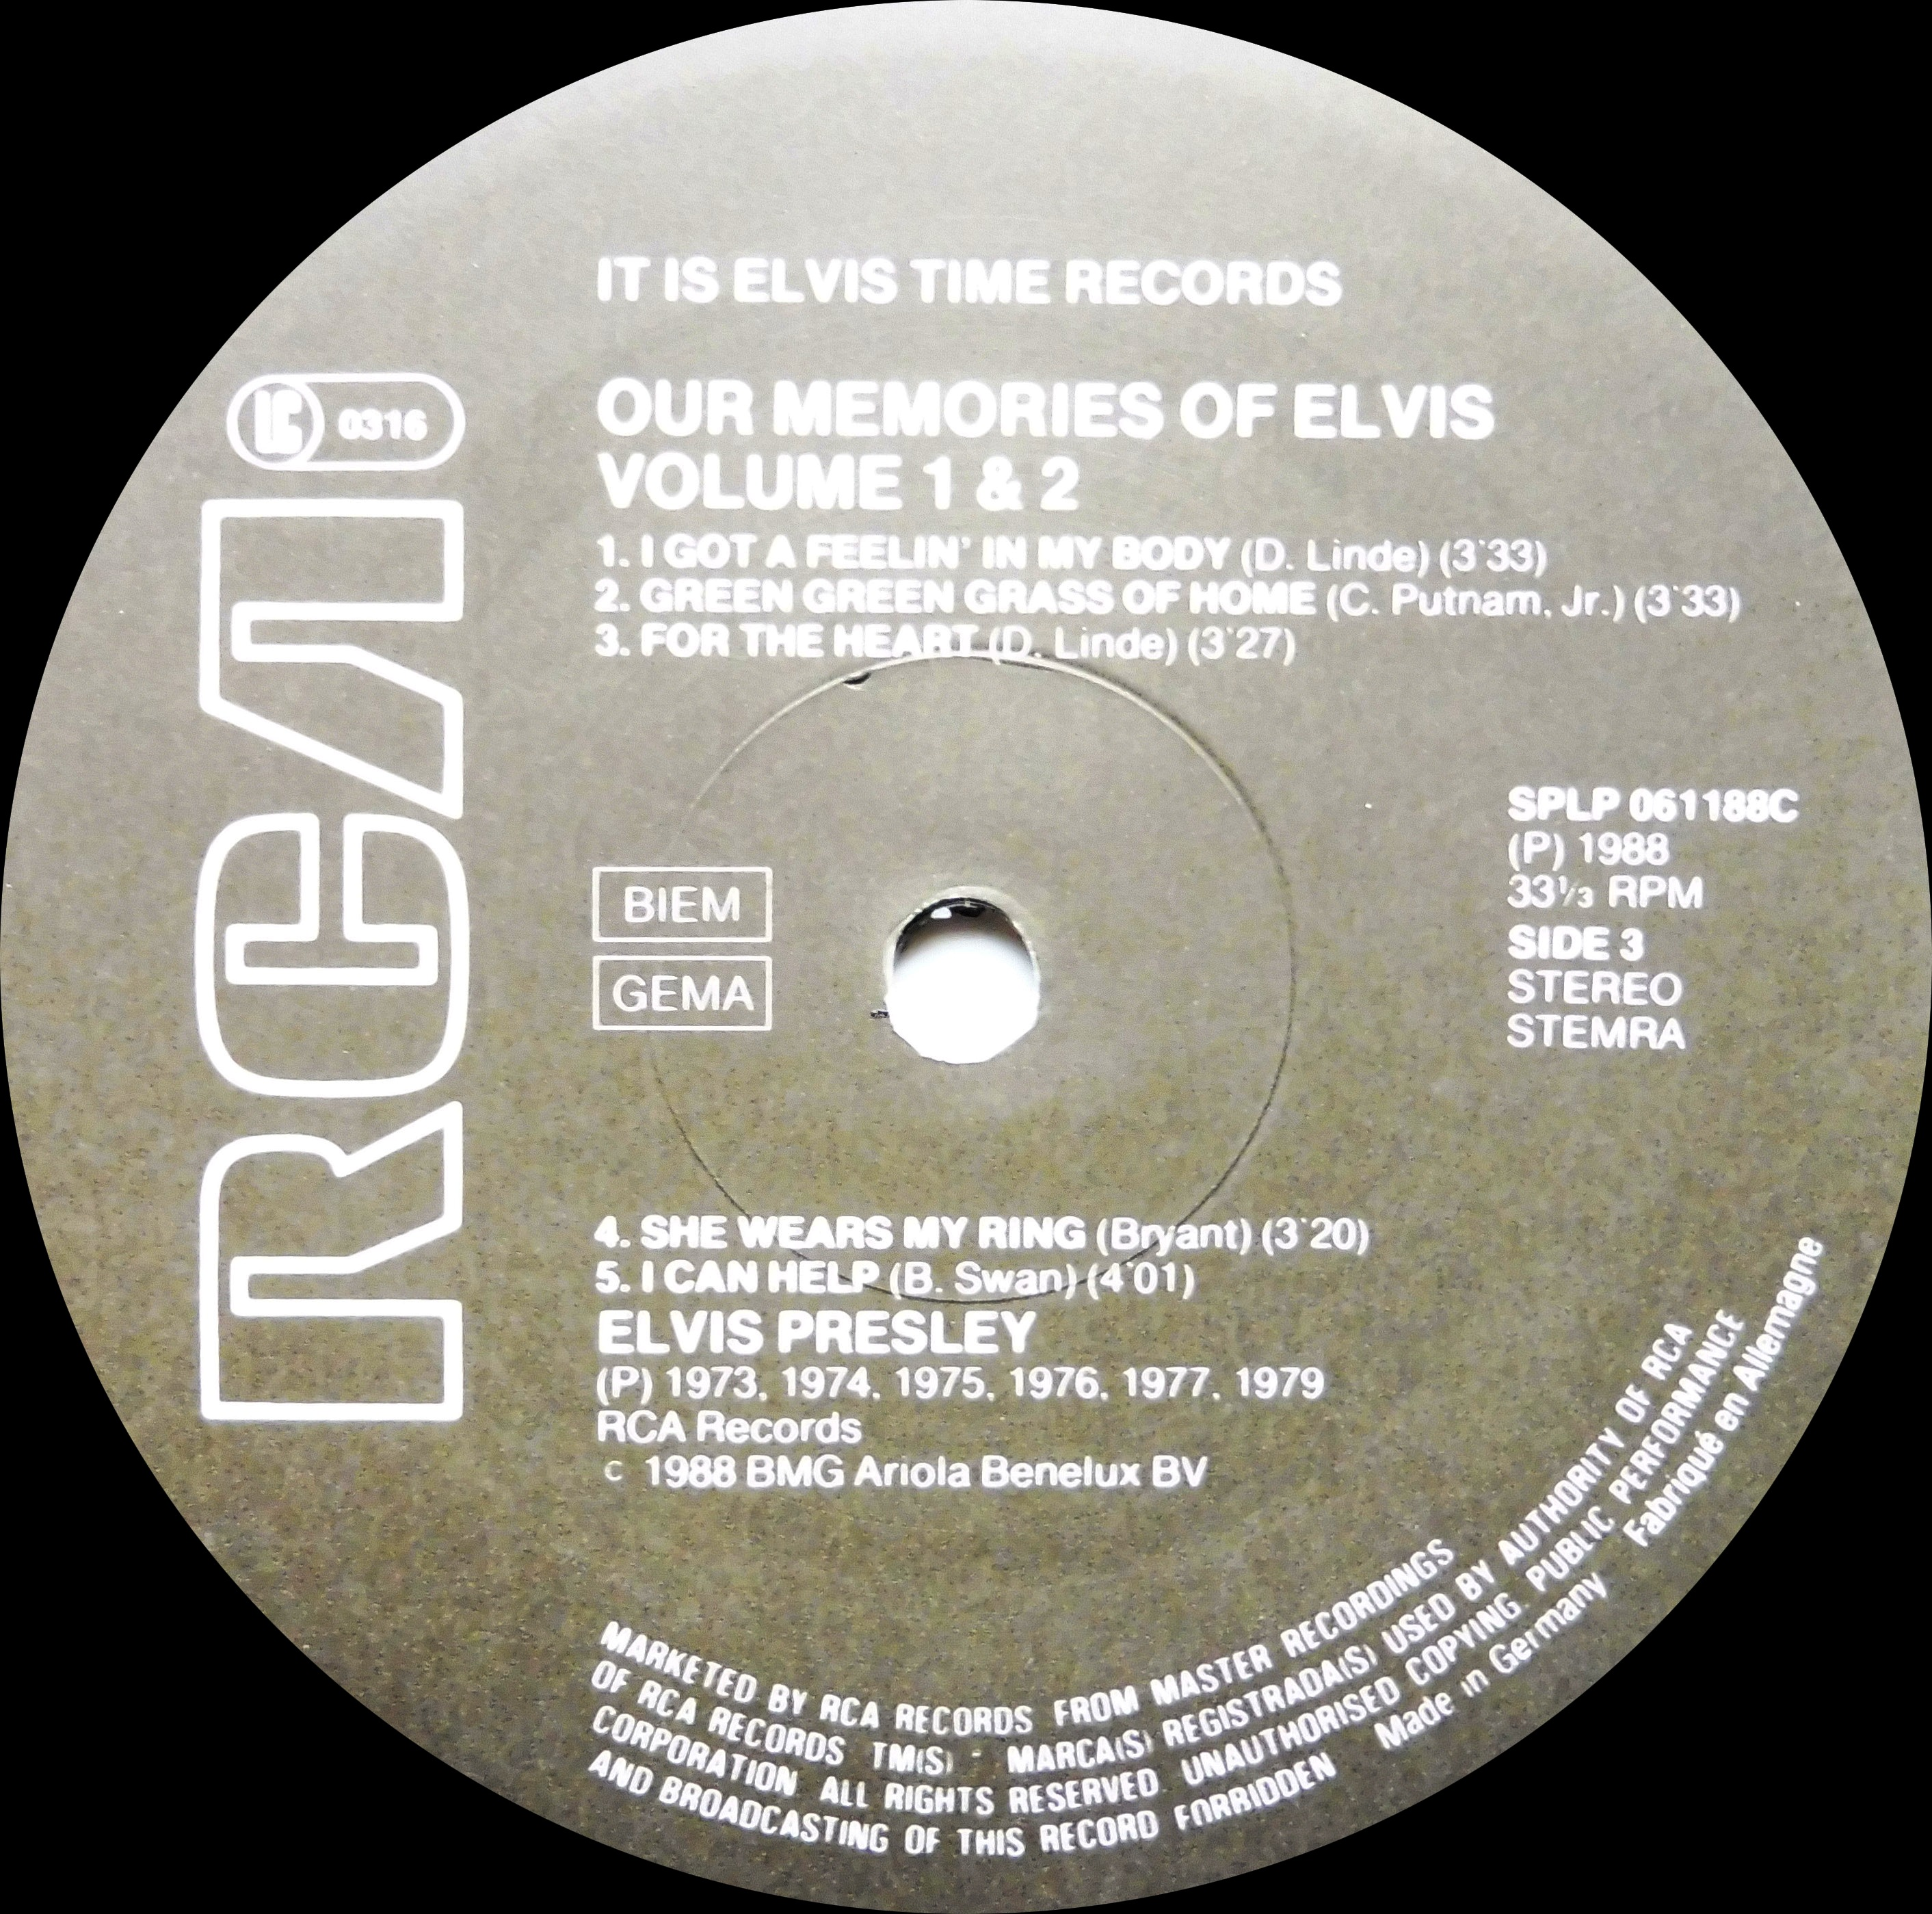 OUR MEMORIES OF ELVIS - Volume 1 & 2 Omoevol1und2nlside3ankfp